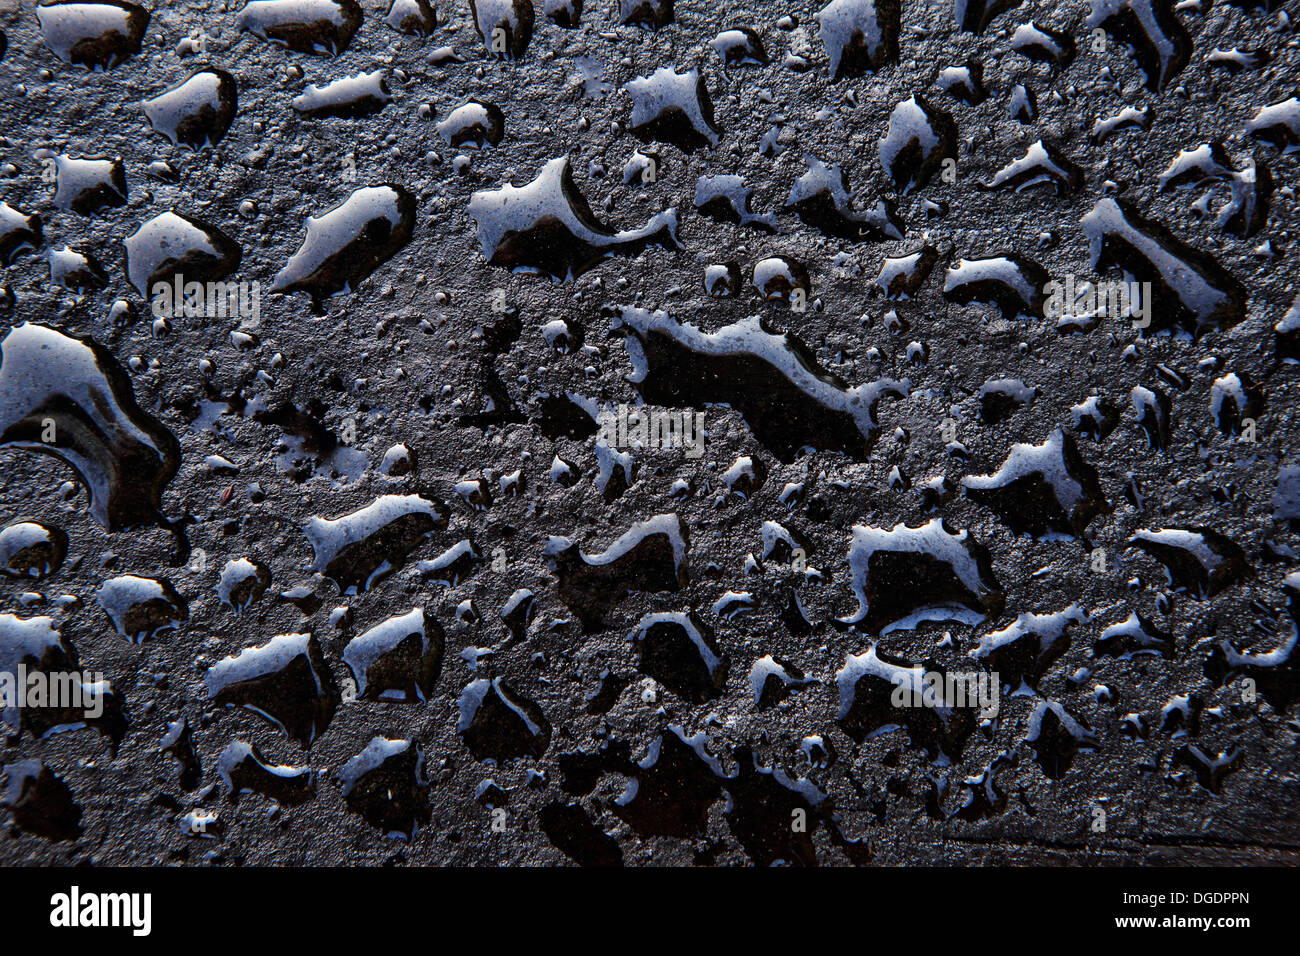 Water drops on oily wooden surface of railway sleeper - Stock Image